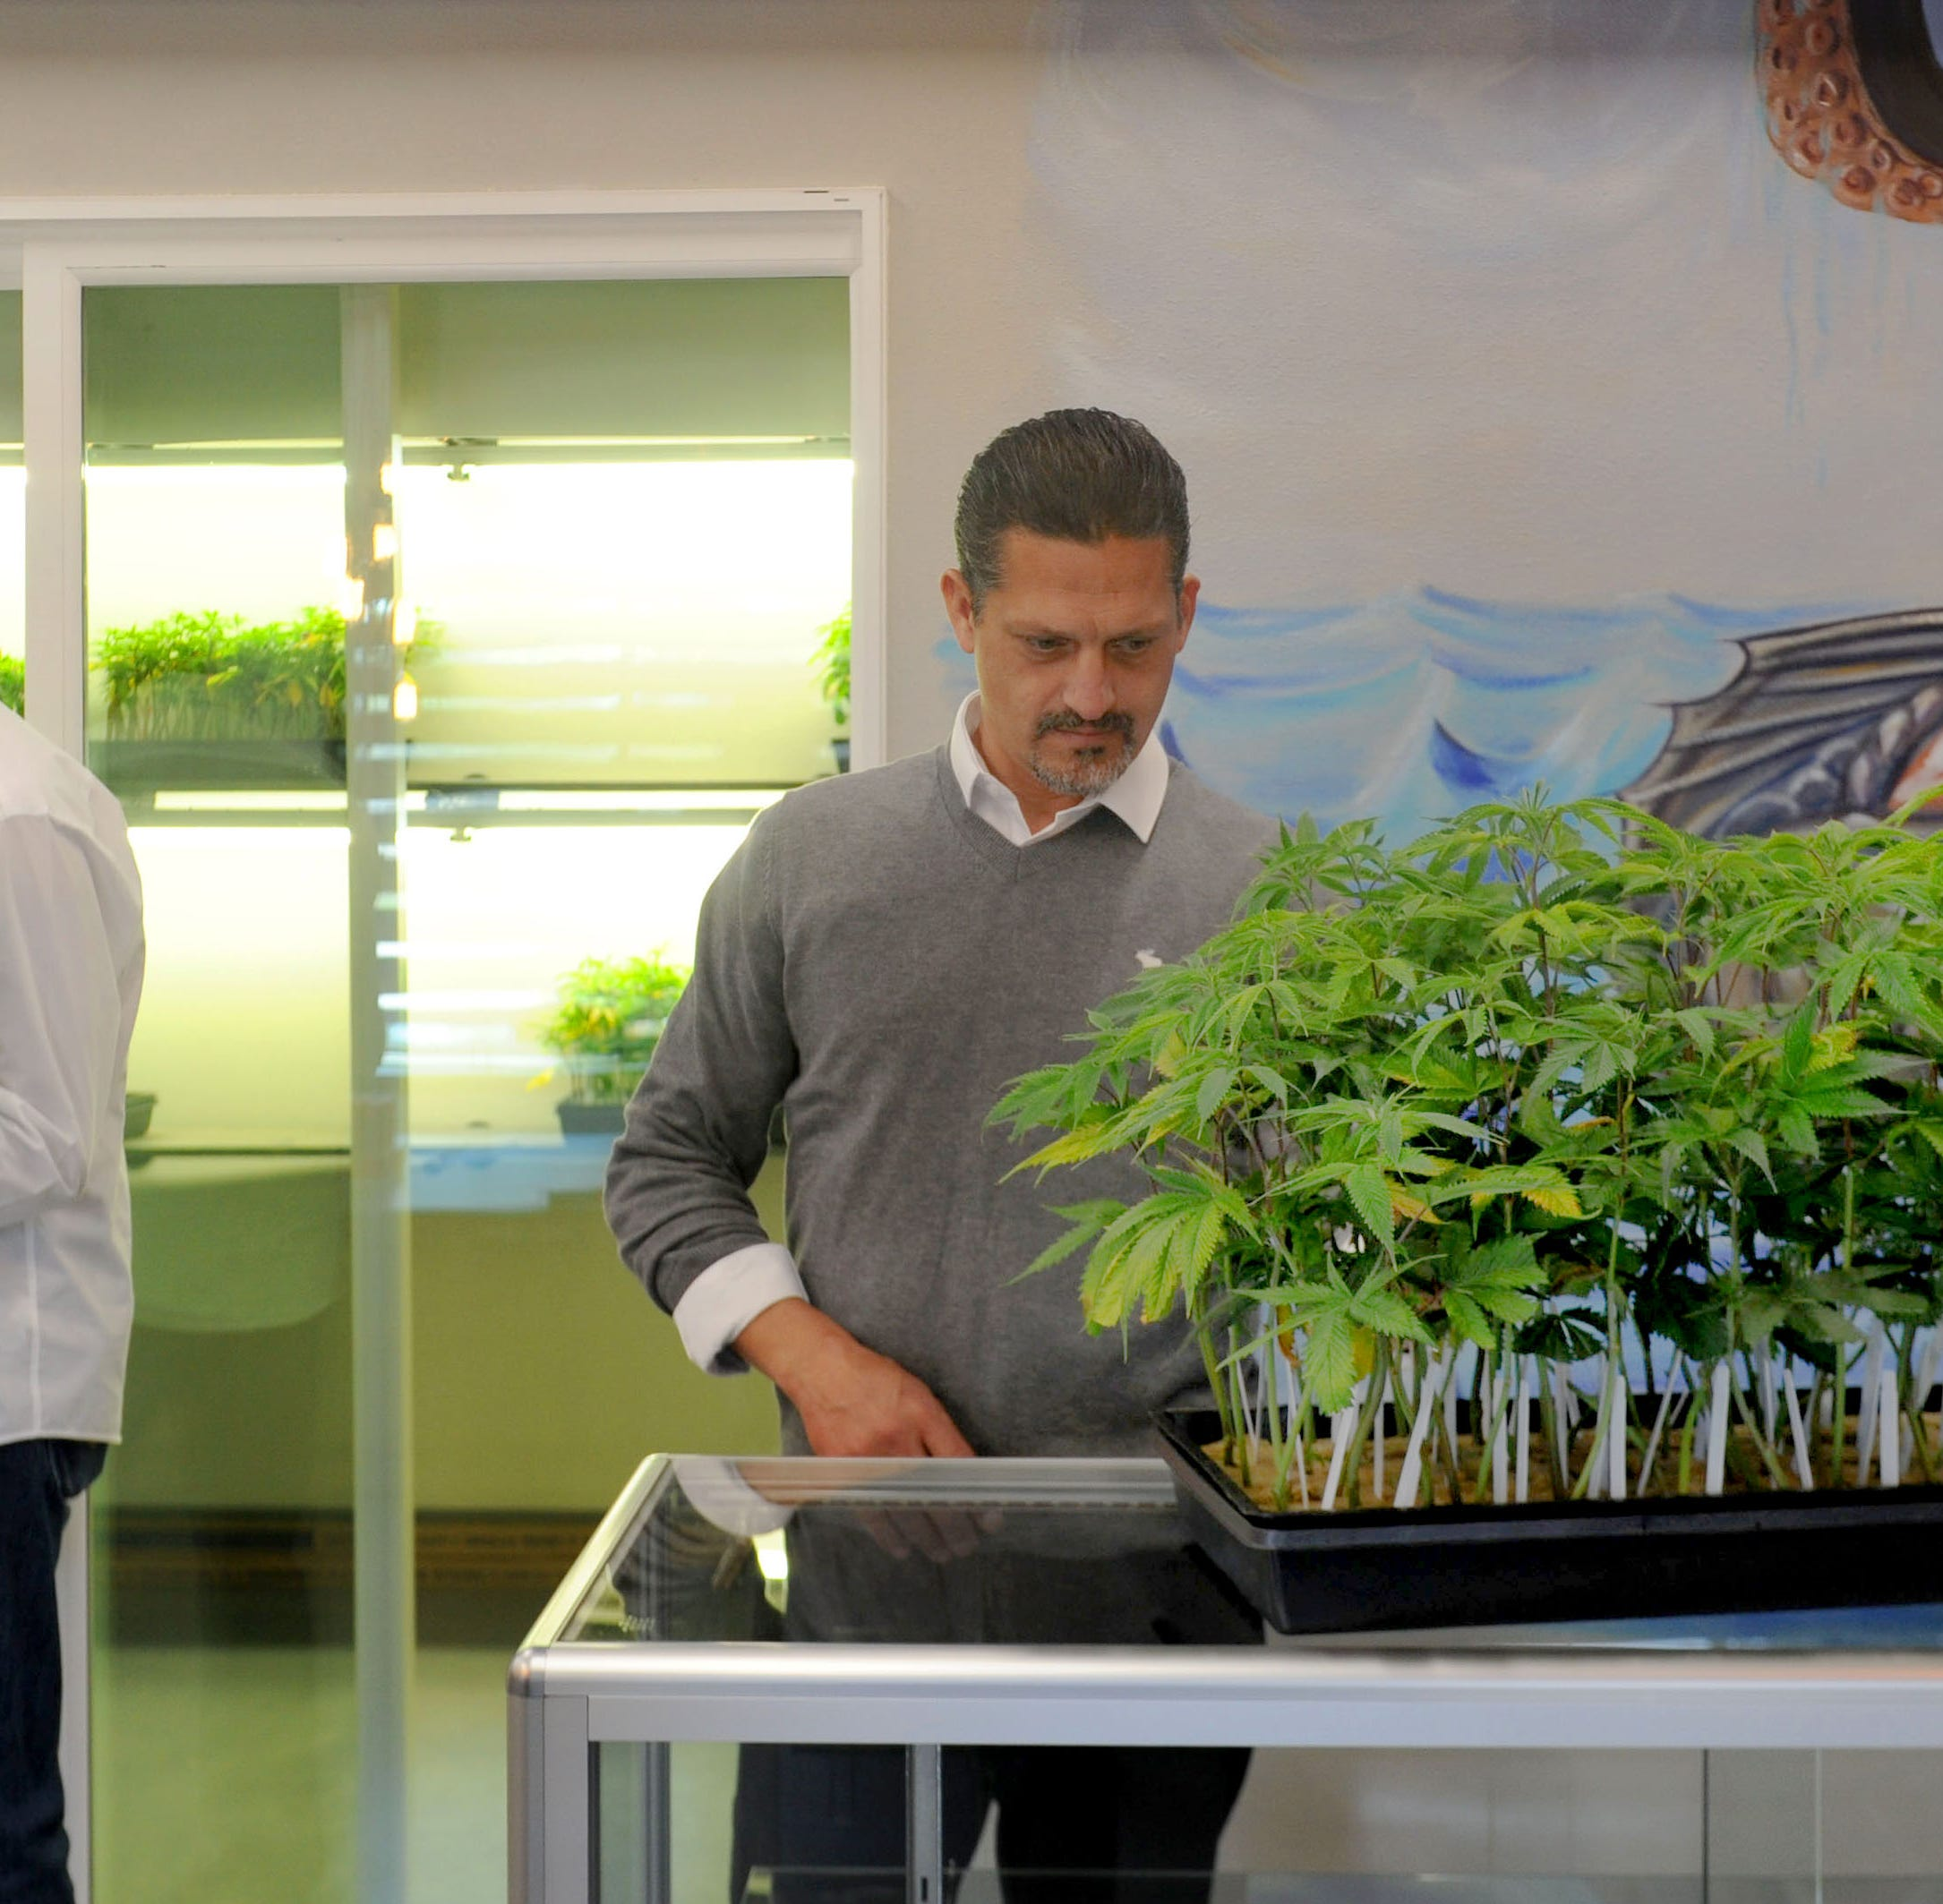 Port Hueneme's marijuana industry has commercial property values blazing